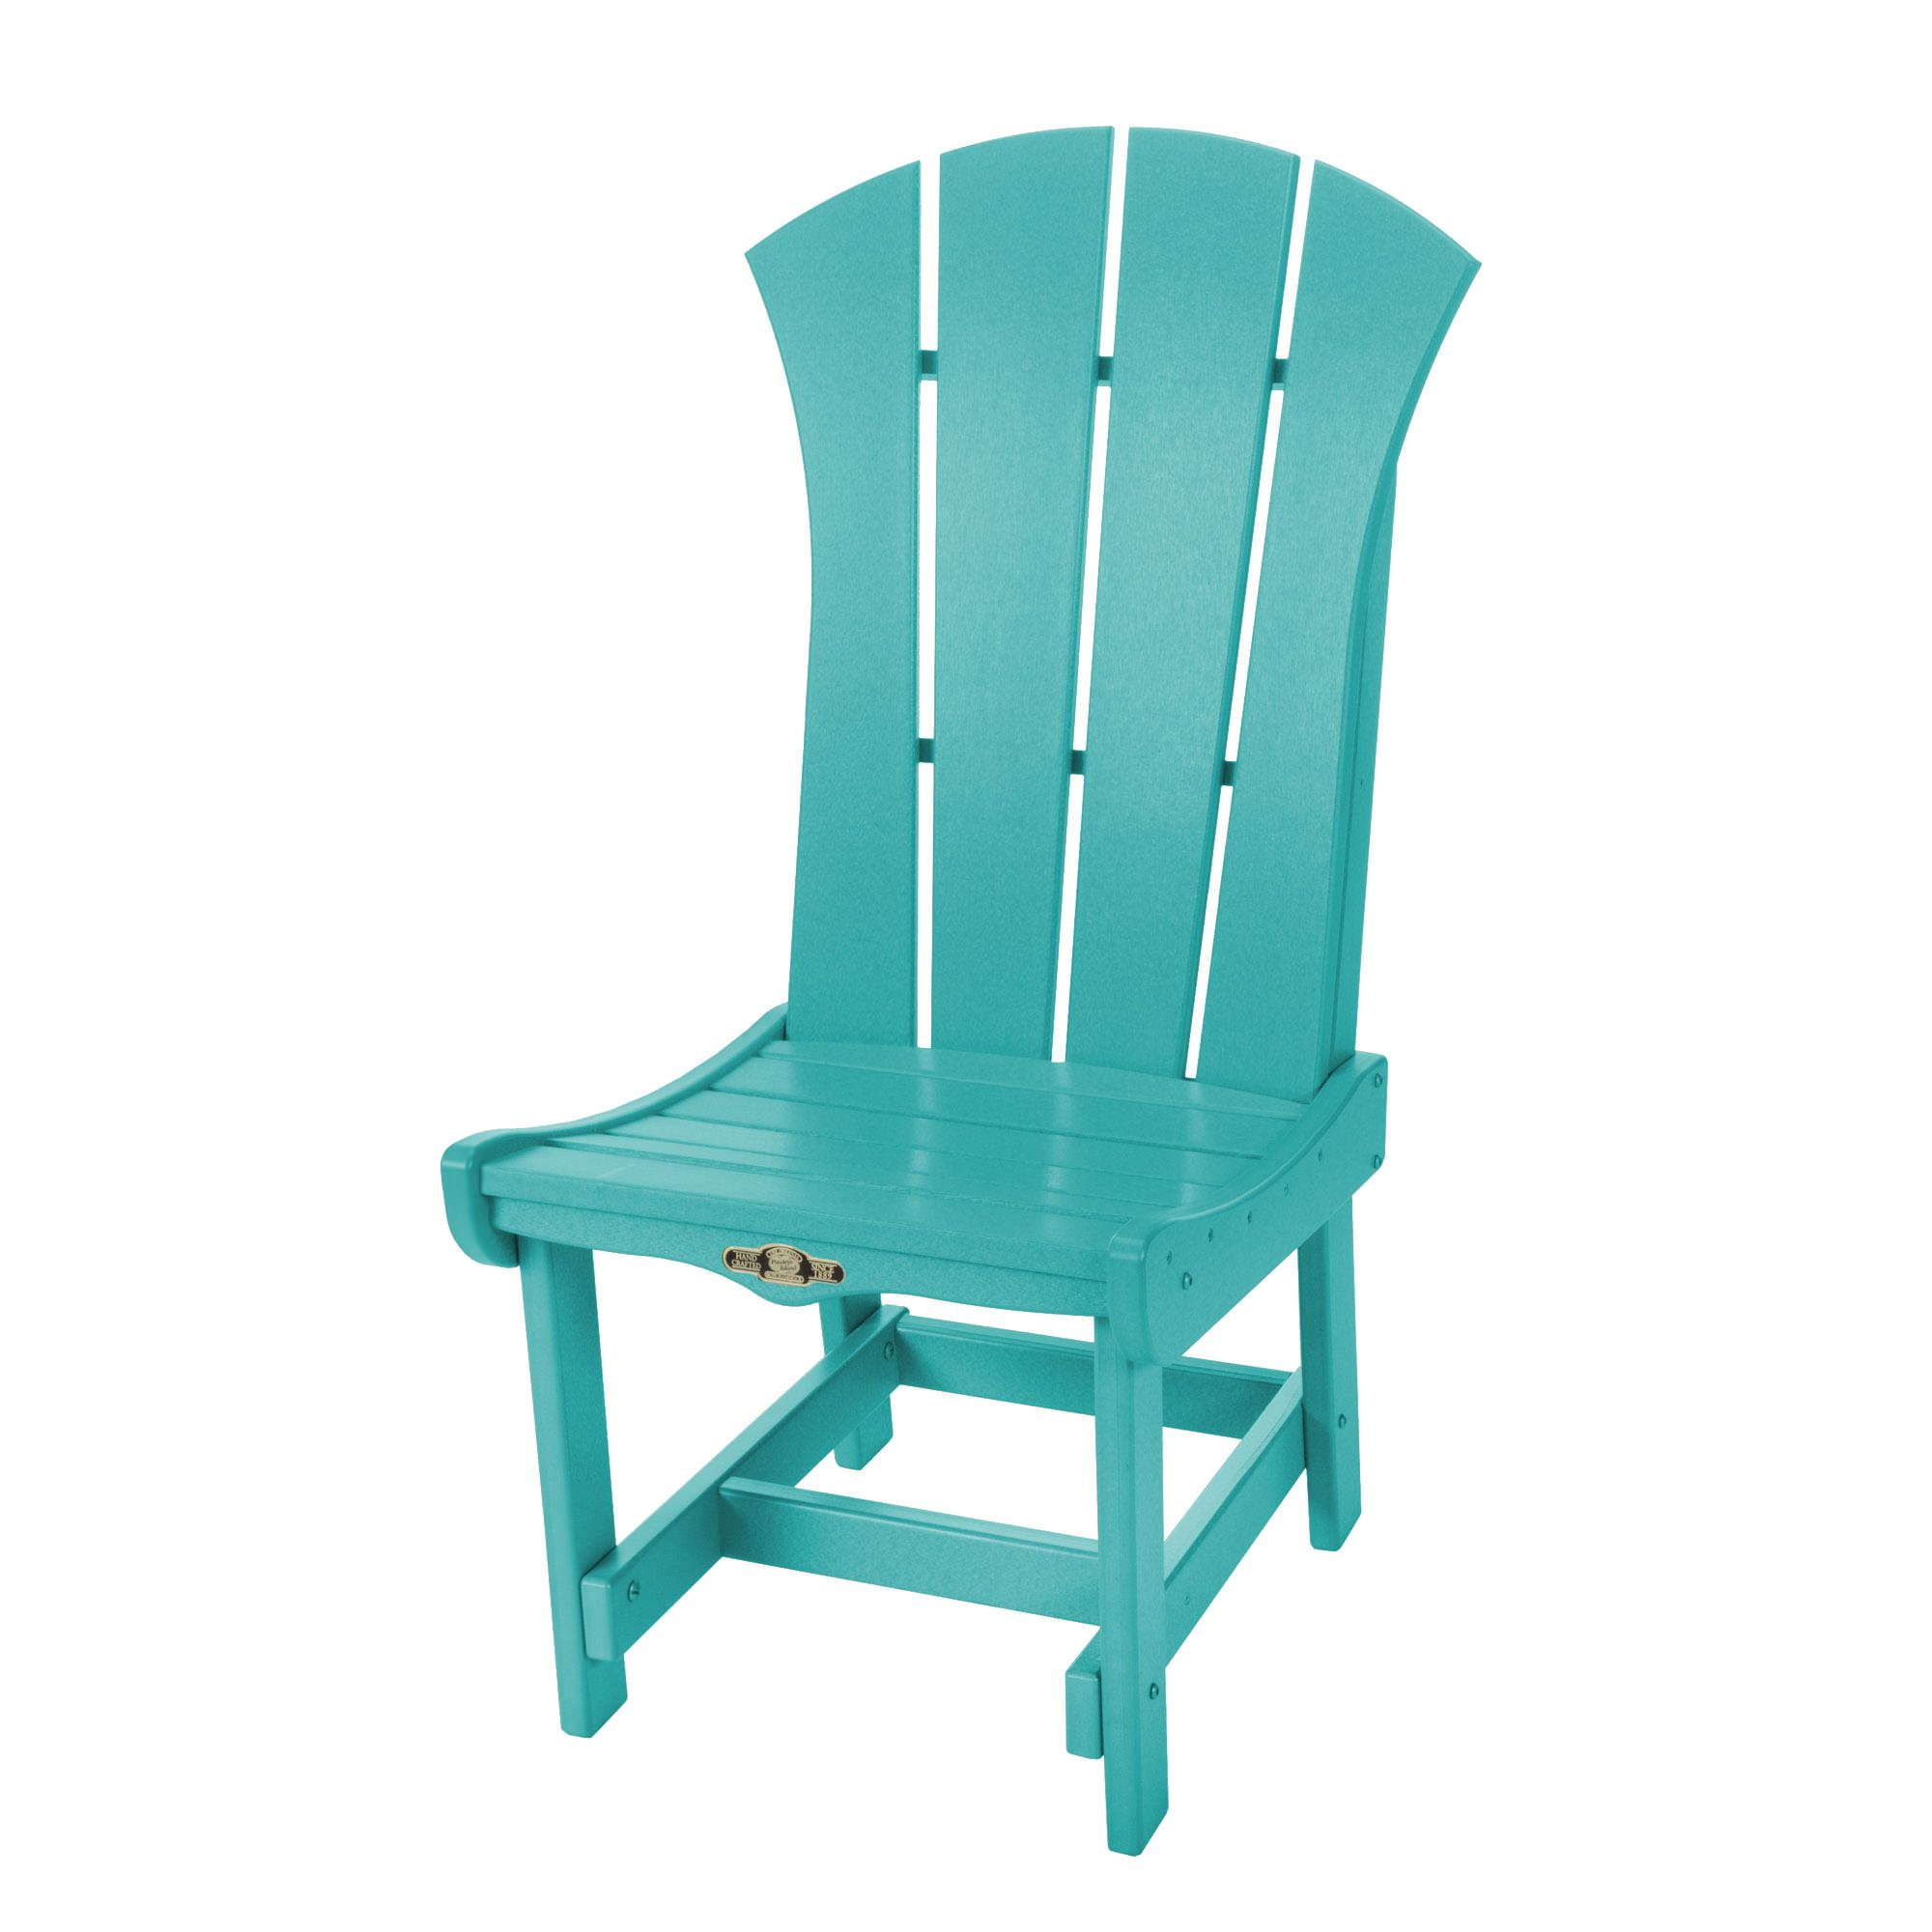 Shop Durawood Sunrise Outdoor Dining Chairs on Sale